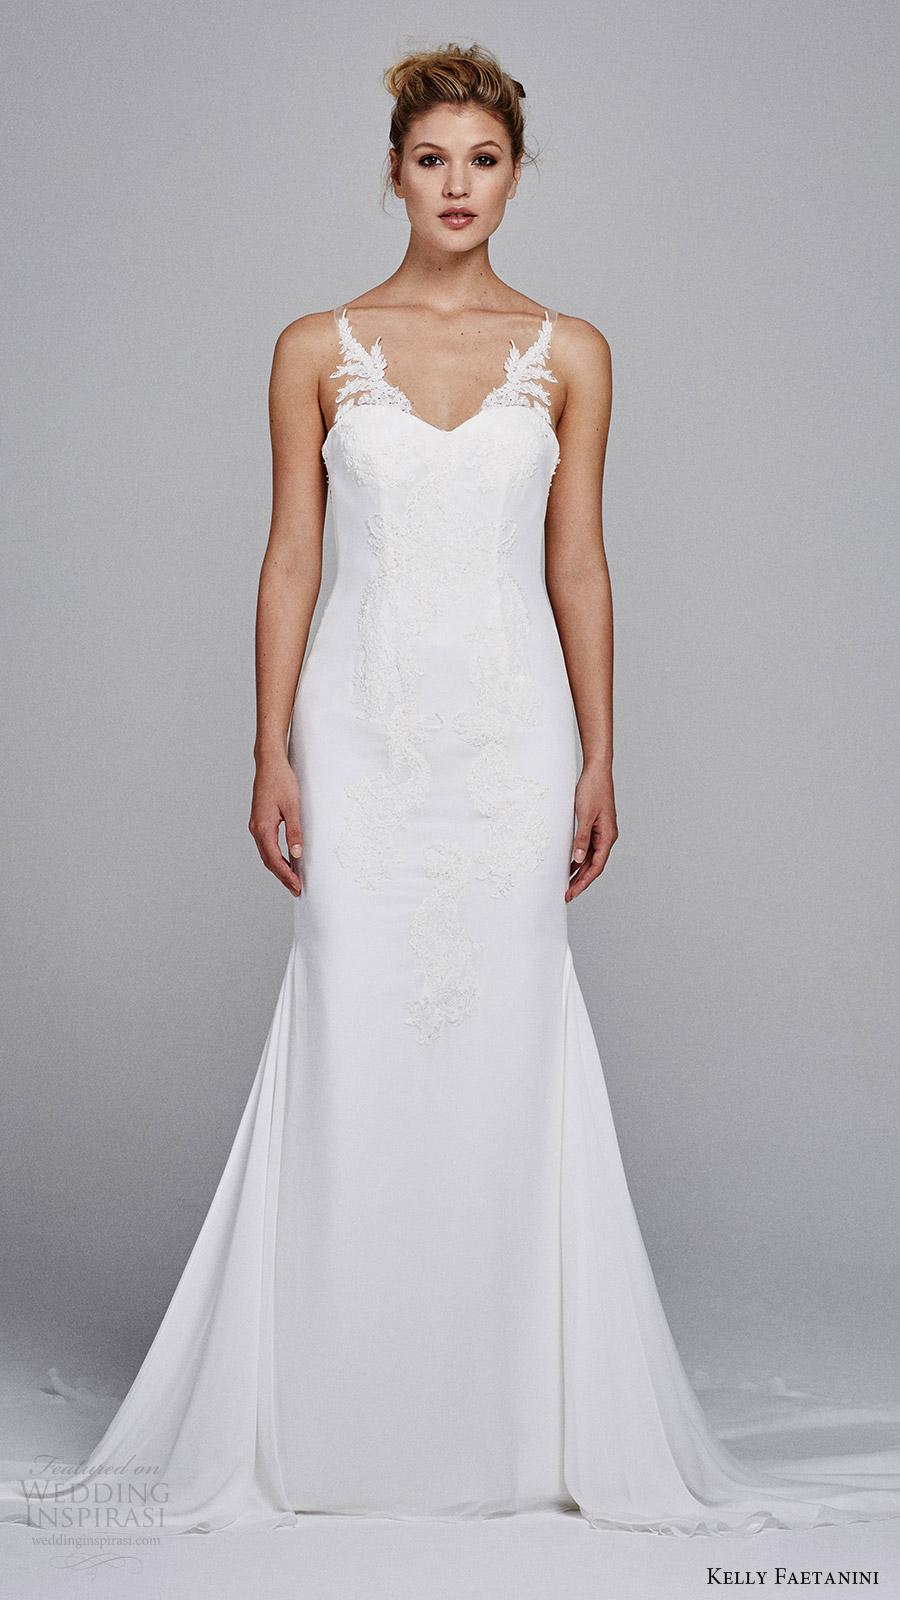 kelly faetanini bridal fall 2017 sleeveless sweetheart illusion vneck sheath alencon lace wedding dress (heather) mv